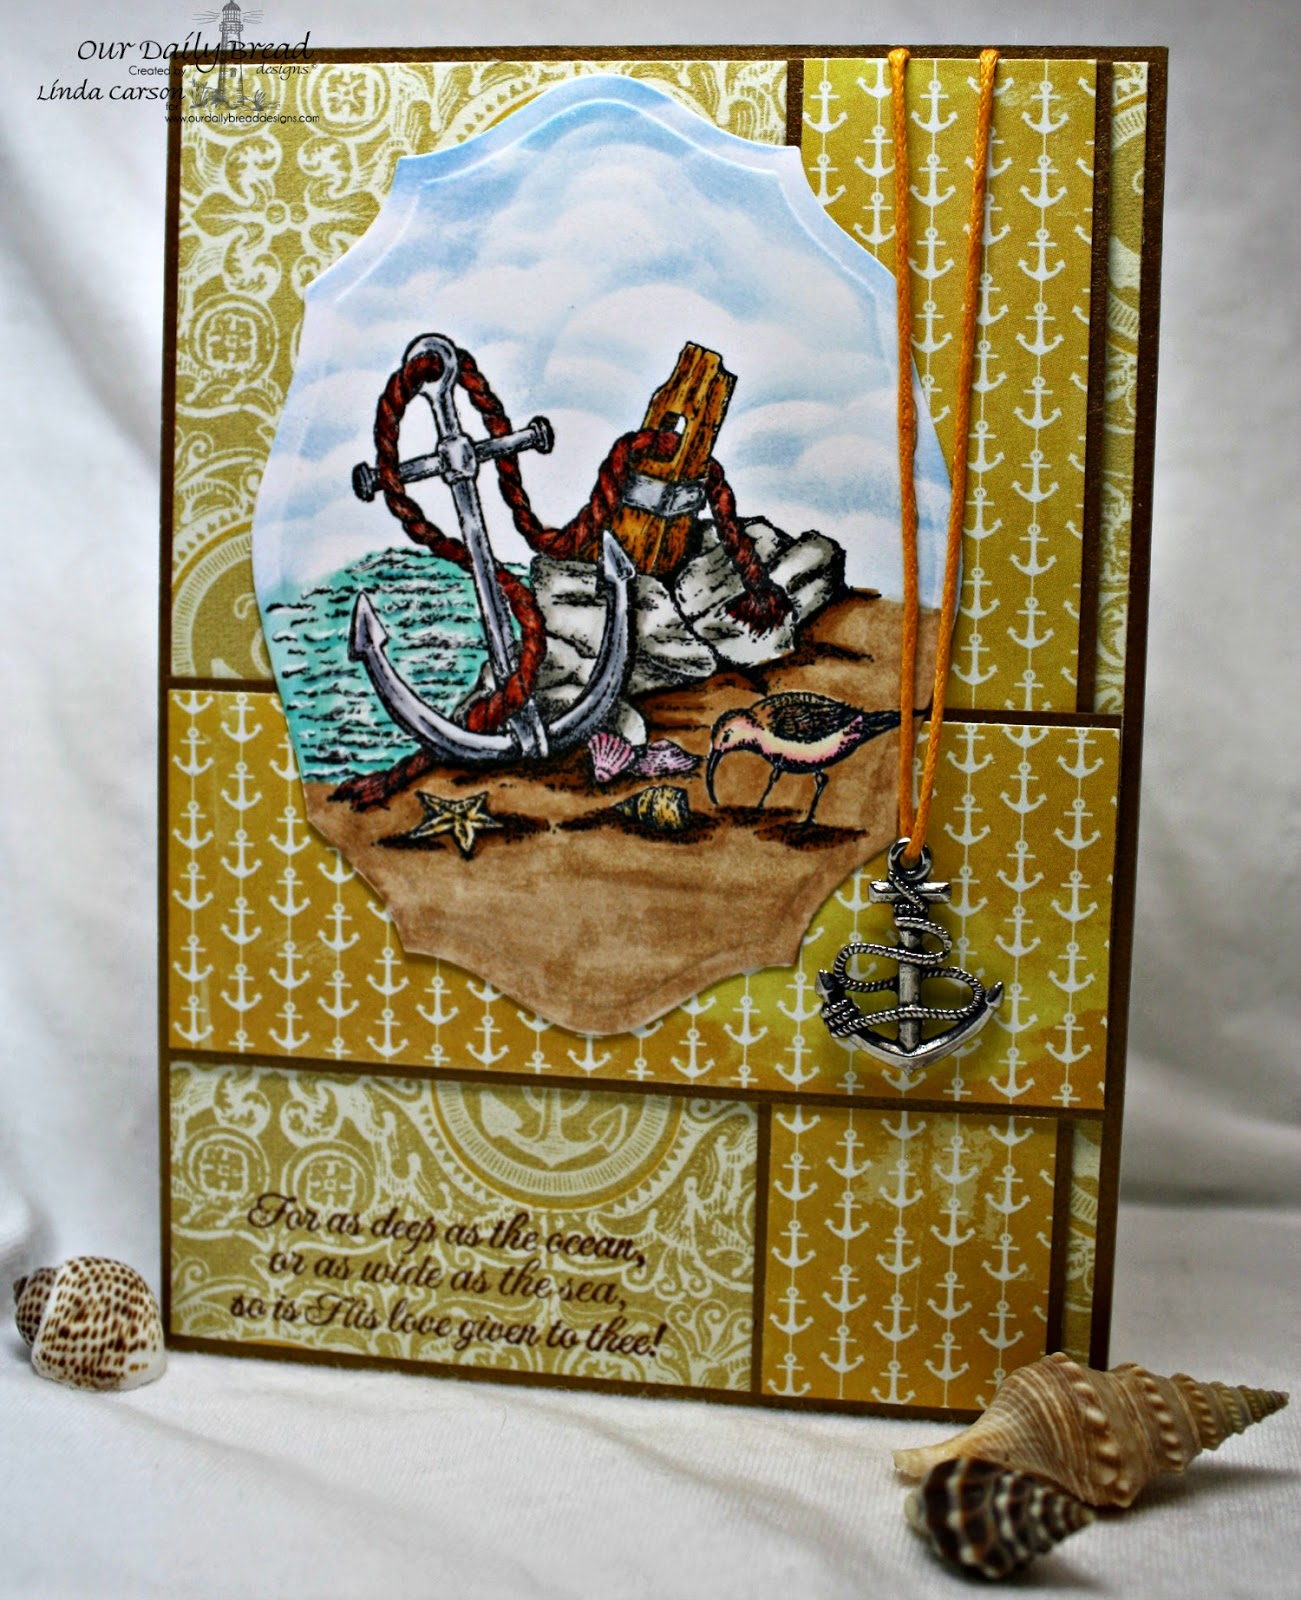 Our Daily Bread Designs, Anchor, The Mighty Sea, Elegant Oval dies, designer Linda Carson